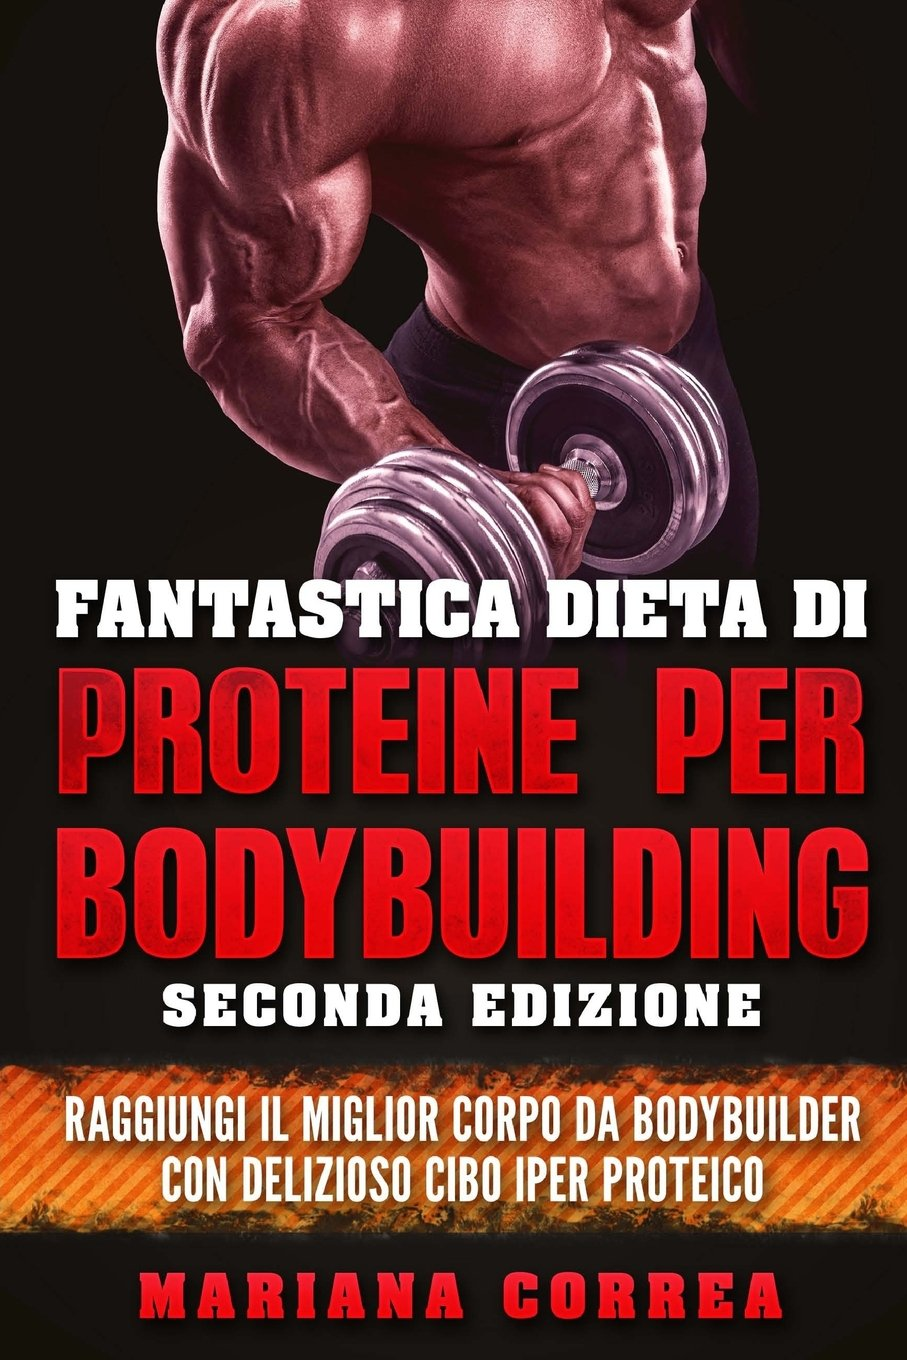 dieta vegetariana bodybuildingLike An Expert. Follow These 5 Steps To Get There